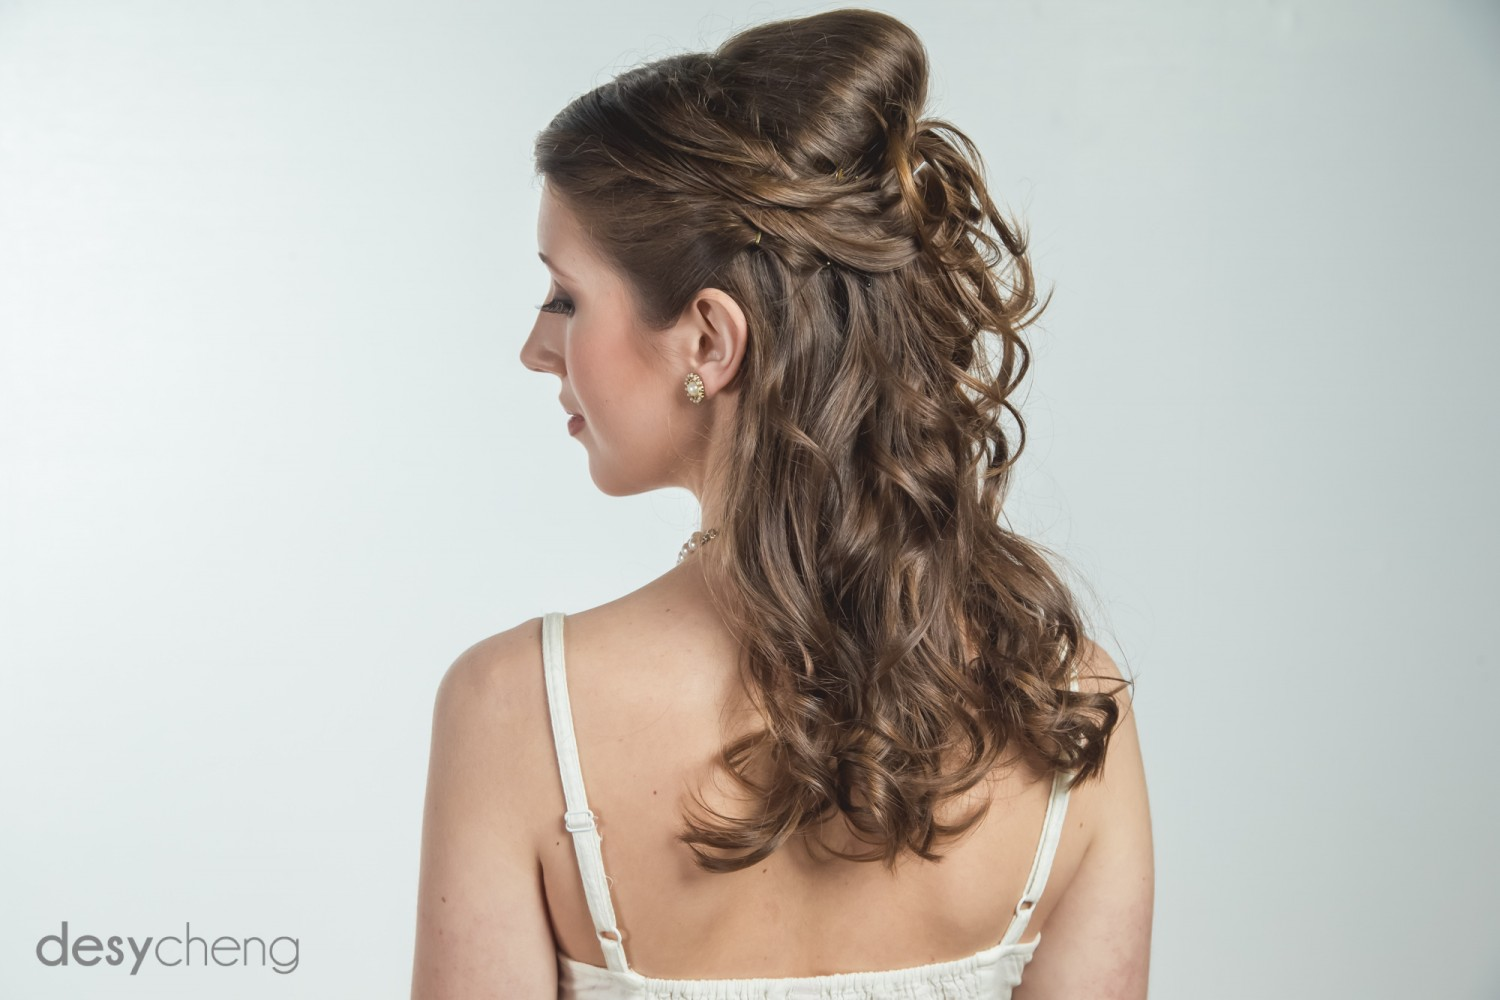 Hair and Makeup by Kaitlin Chapple<br /> Photography by Desy Cheng<br /> Model Nicole